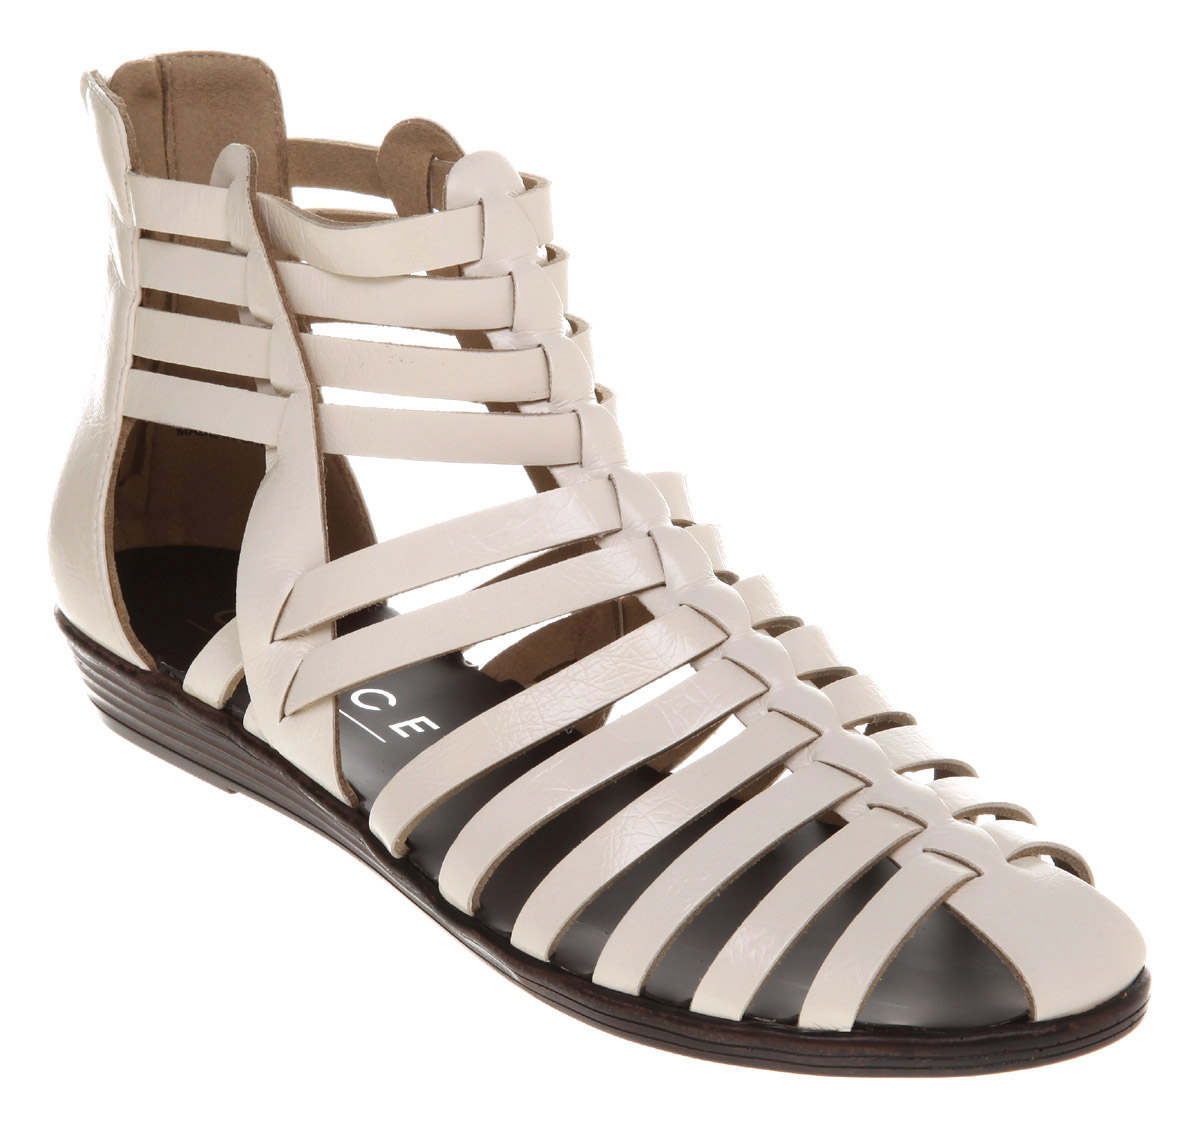 Womens-Office-Neopolitan-Gladiator-White-Pu-Sandals